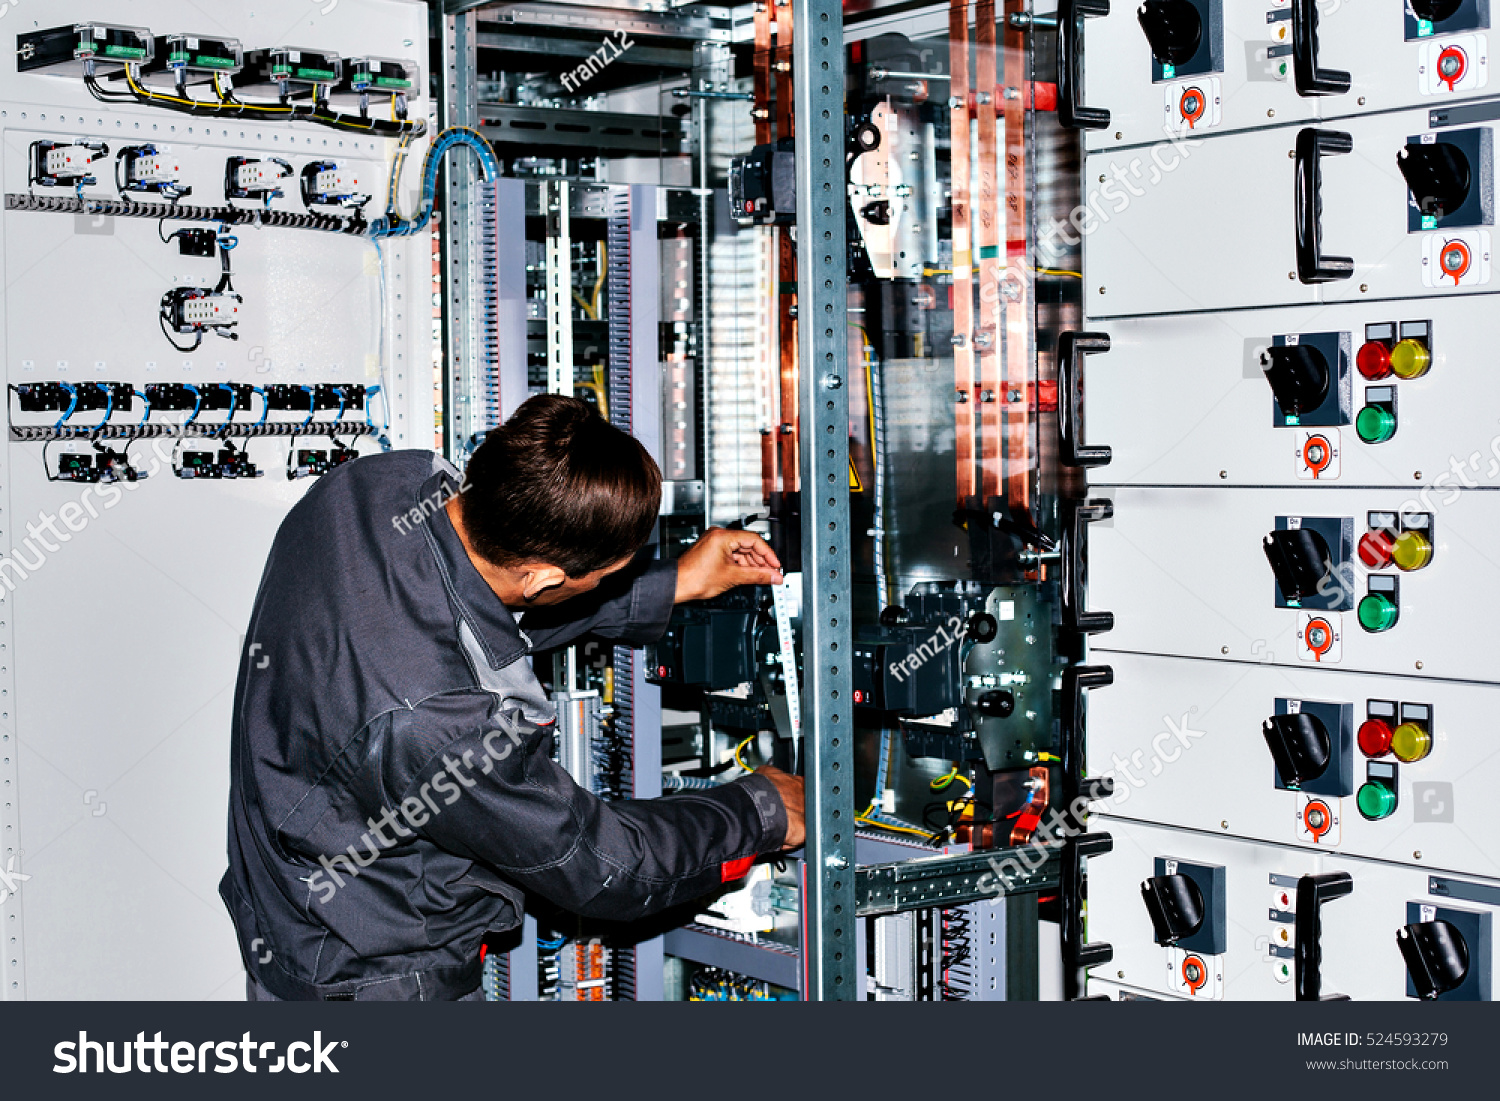 Electrician Near Lowvoltage Cabinet Uninterrupted Power Stock Photo Low Voltage Wiring Supplies The Supply Electricity